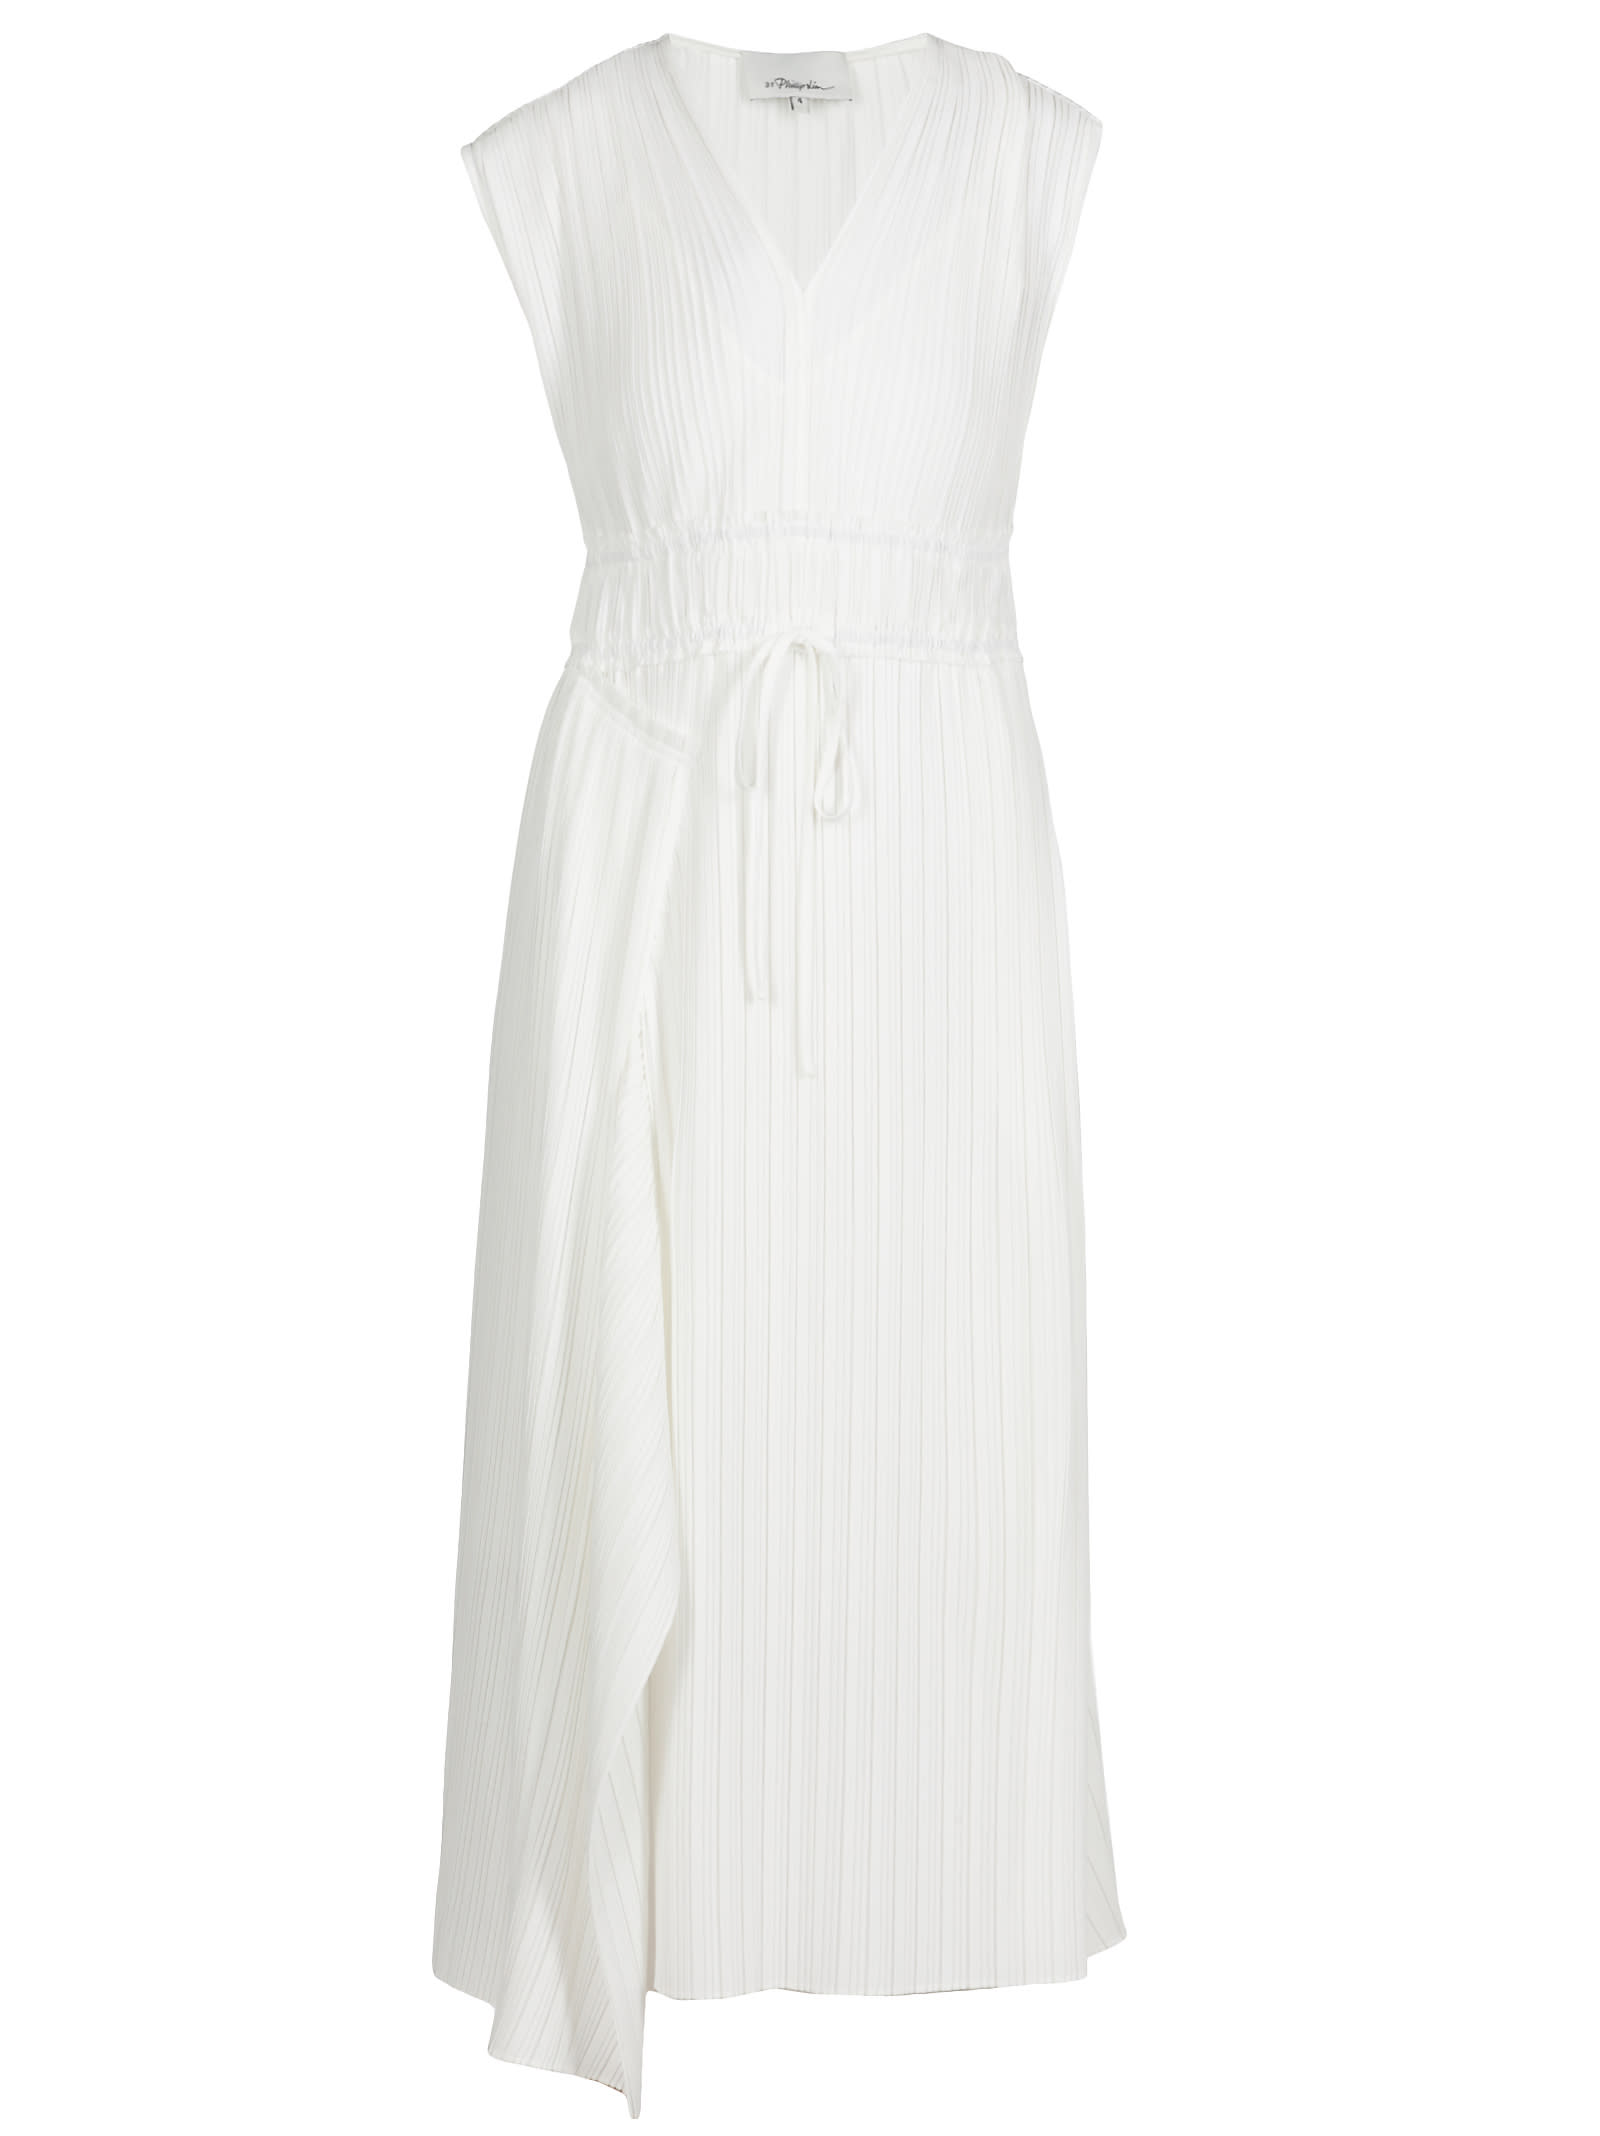 Buy 3.1 Phillip Lim Long Pleated Dress online, shop 3.1 Phillip Lim with free shipping